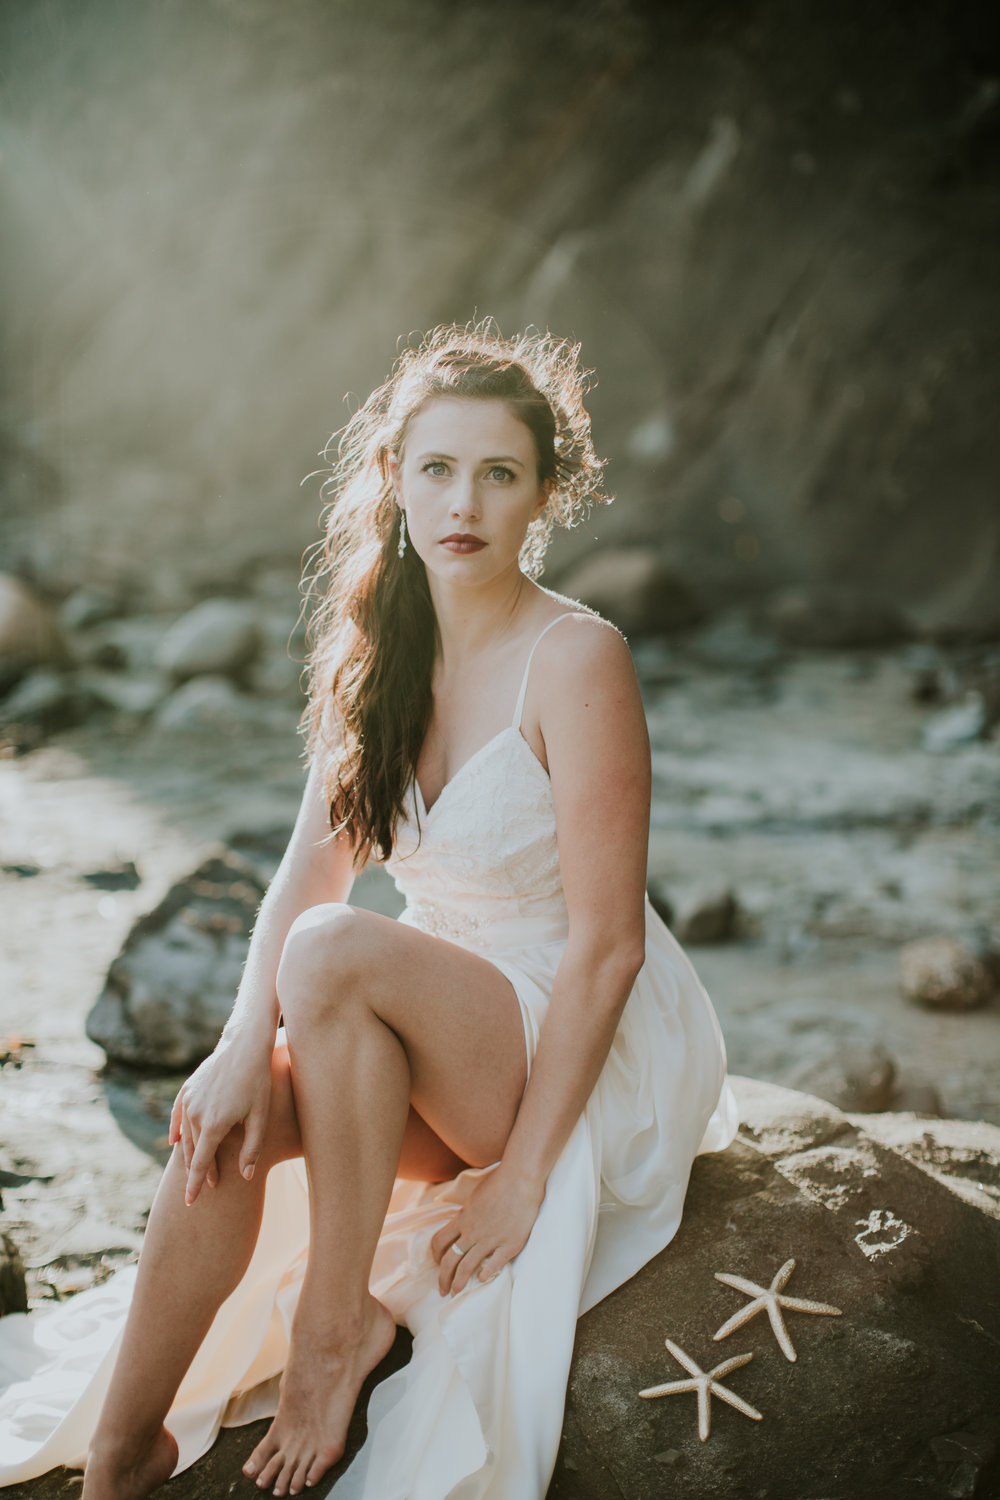 Port-Angeles-Salt-Creek-beach-wedding-bride-PNW-olympic-peninsula-photographer-Kayla-Dawn-Photography-outdoors-golden-hour-dancer-dress (23).jpg